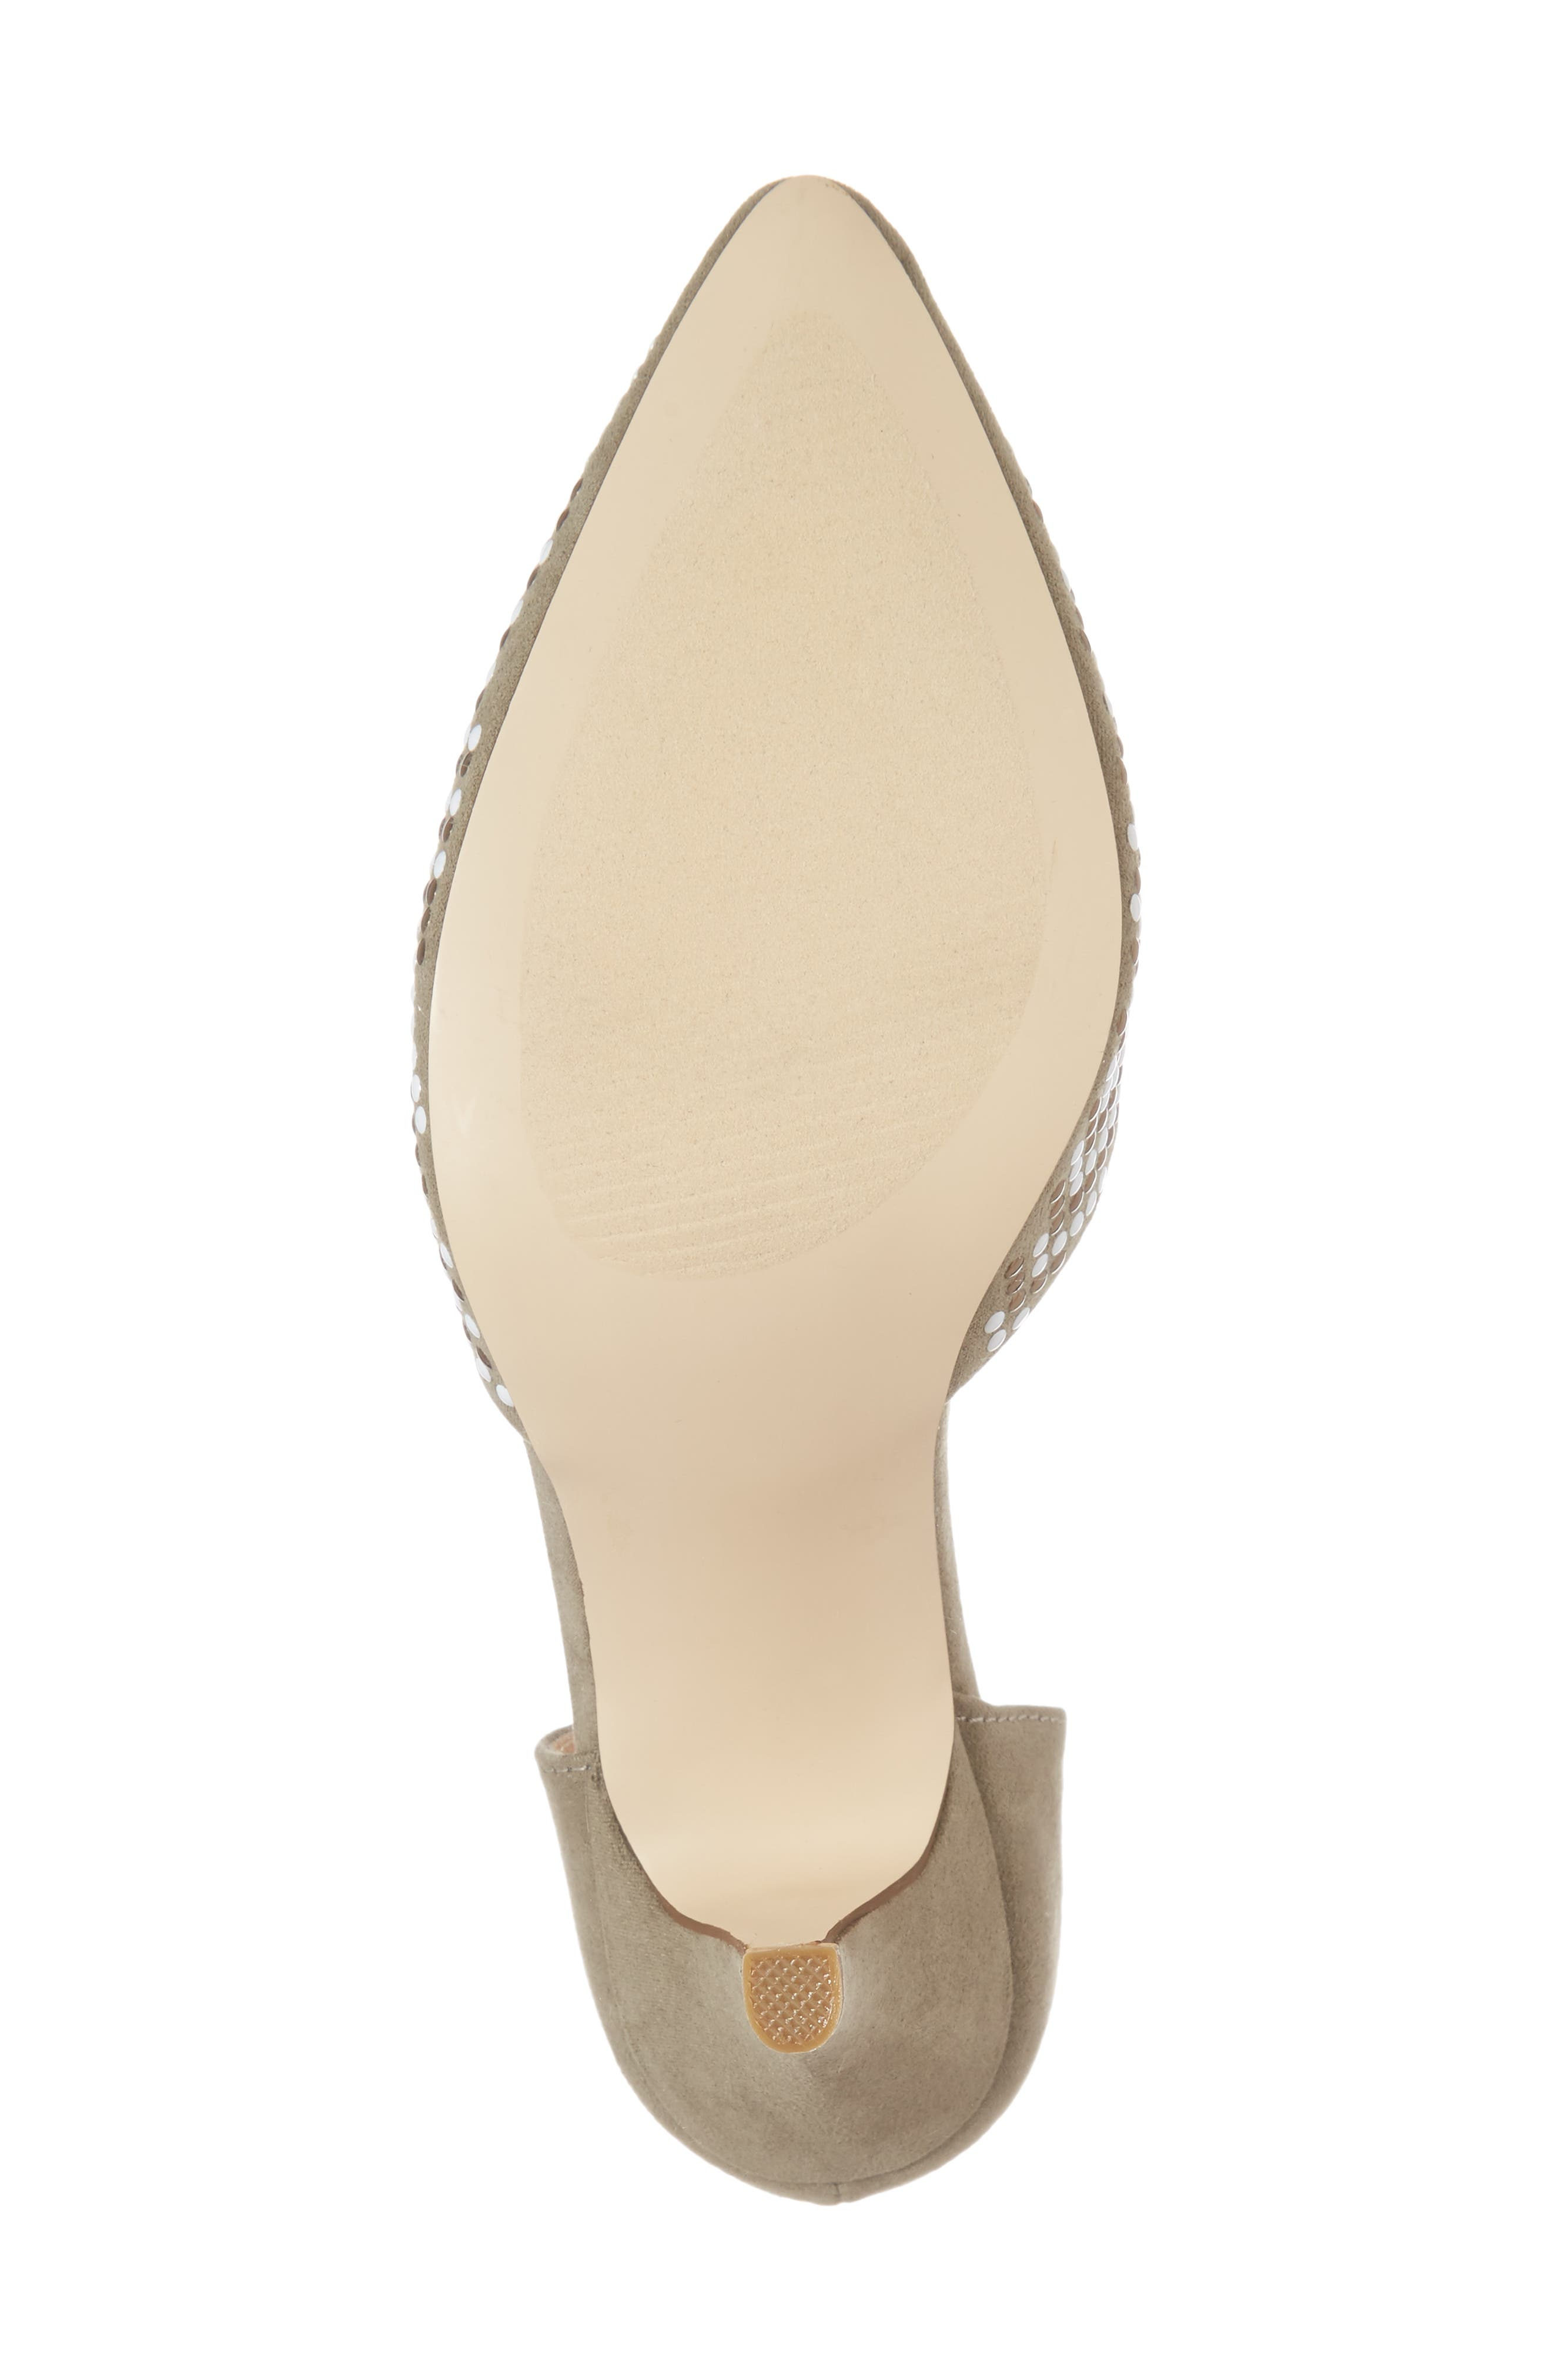 Mimosa Studded d'Orsay Pump,                             Alternate thumbnail 6, color,                             OLIVE SUEDE